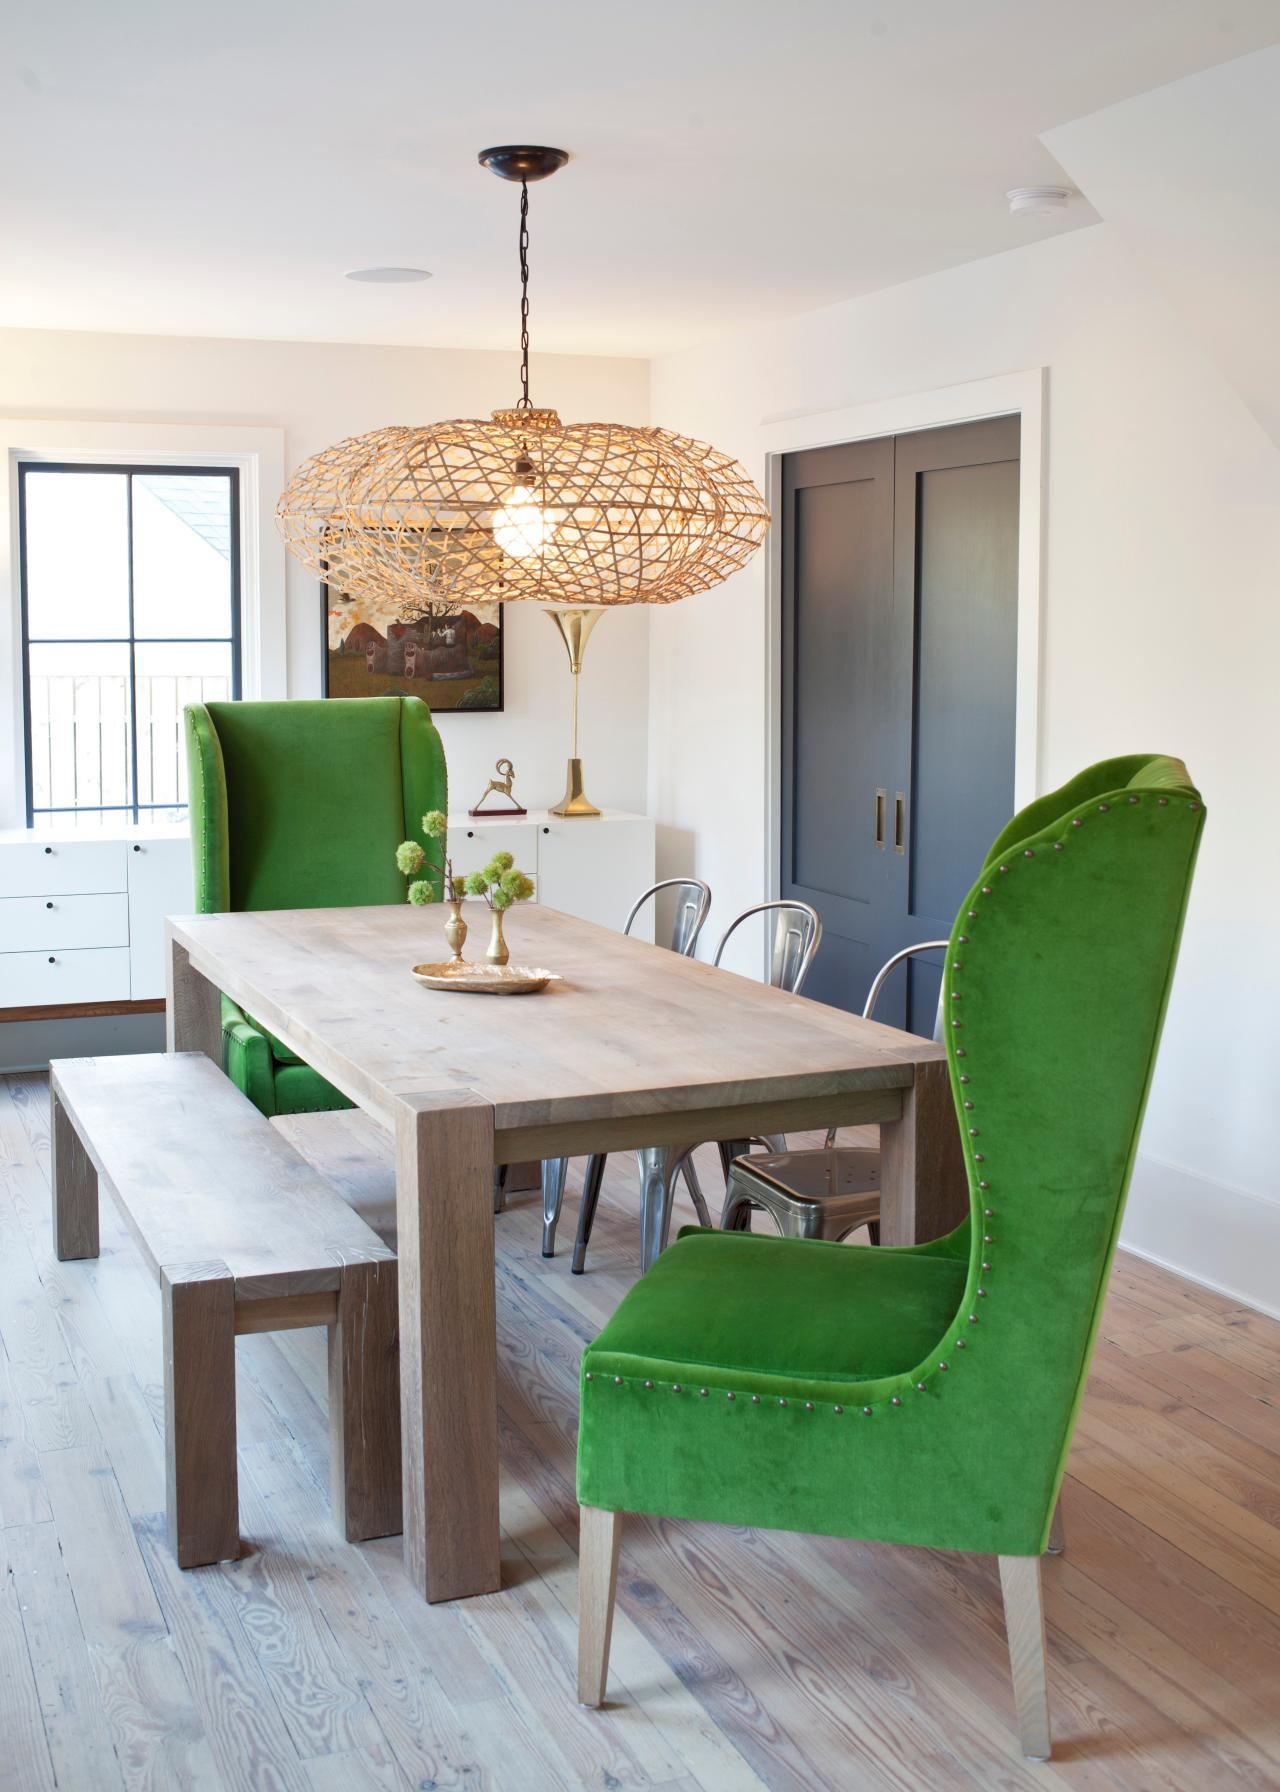 CI-Jen-Langston_emerald-green-plush-dining-chairs_s3x4.jpg.rend.hgtvcom.1280.1792